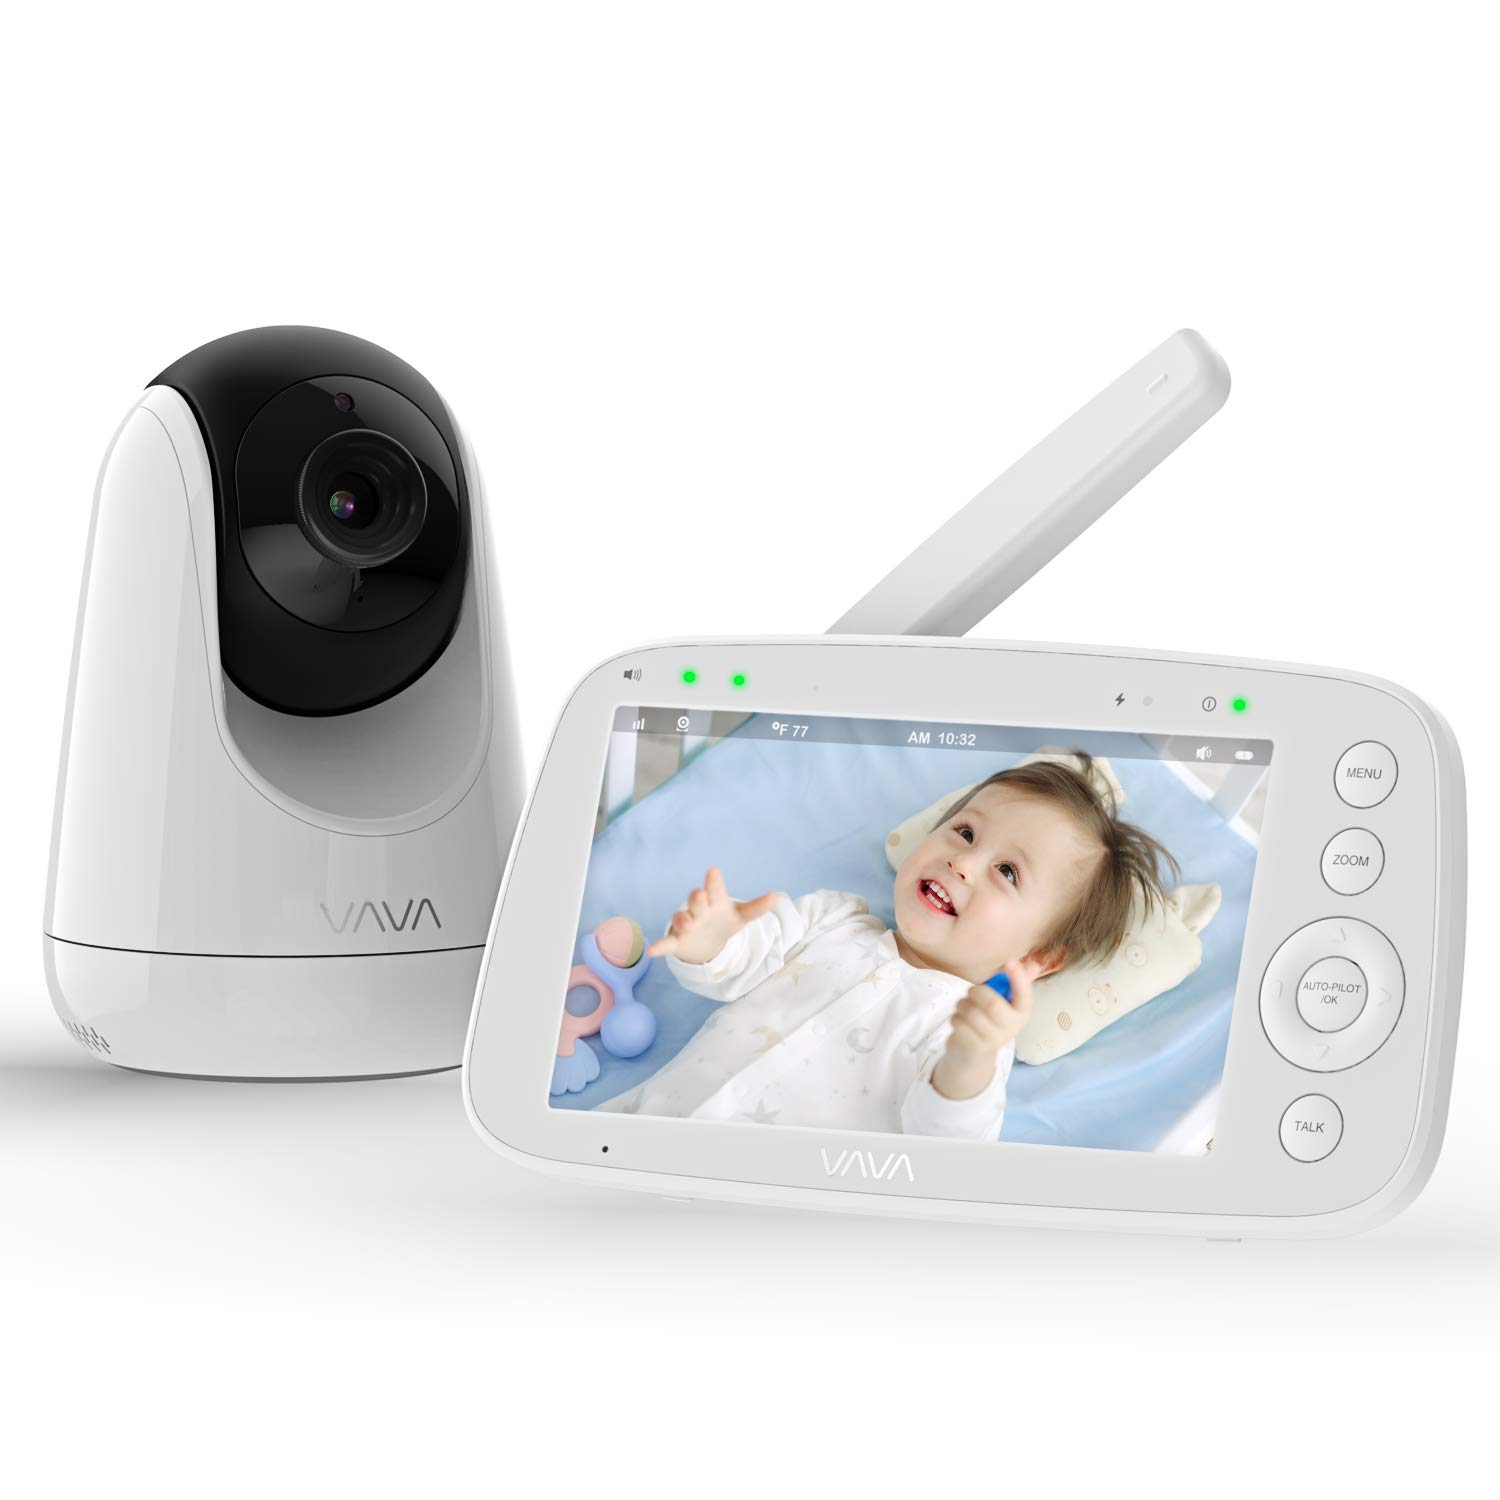 Baby Monitors That Don't Require WIFI